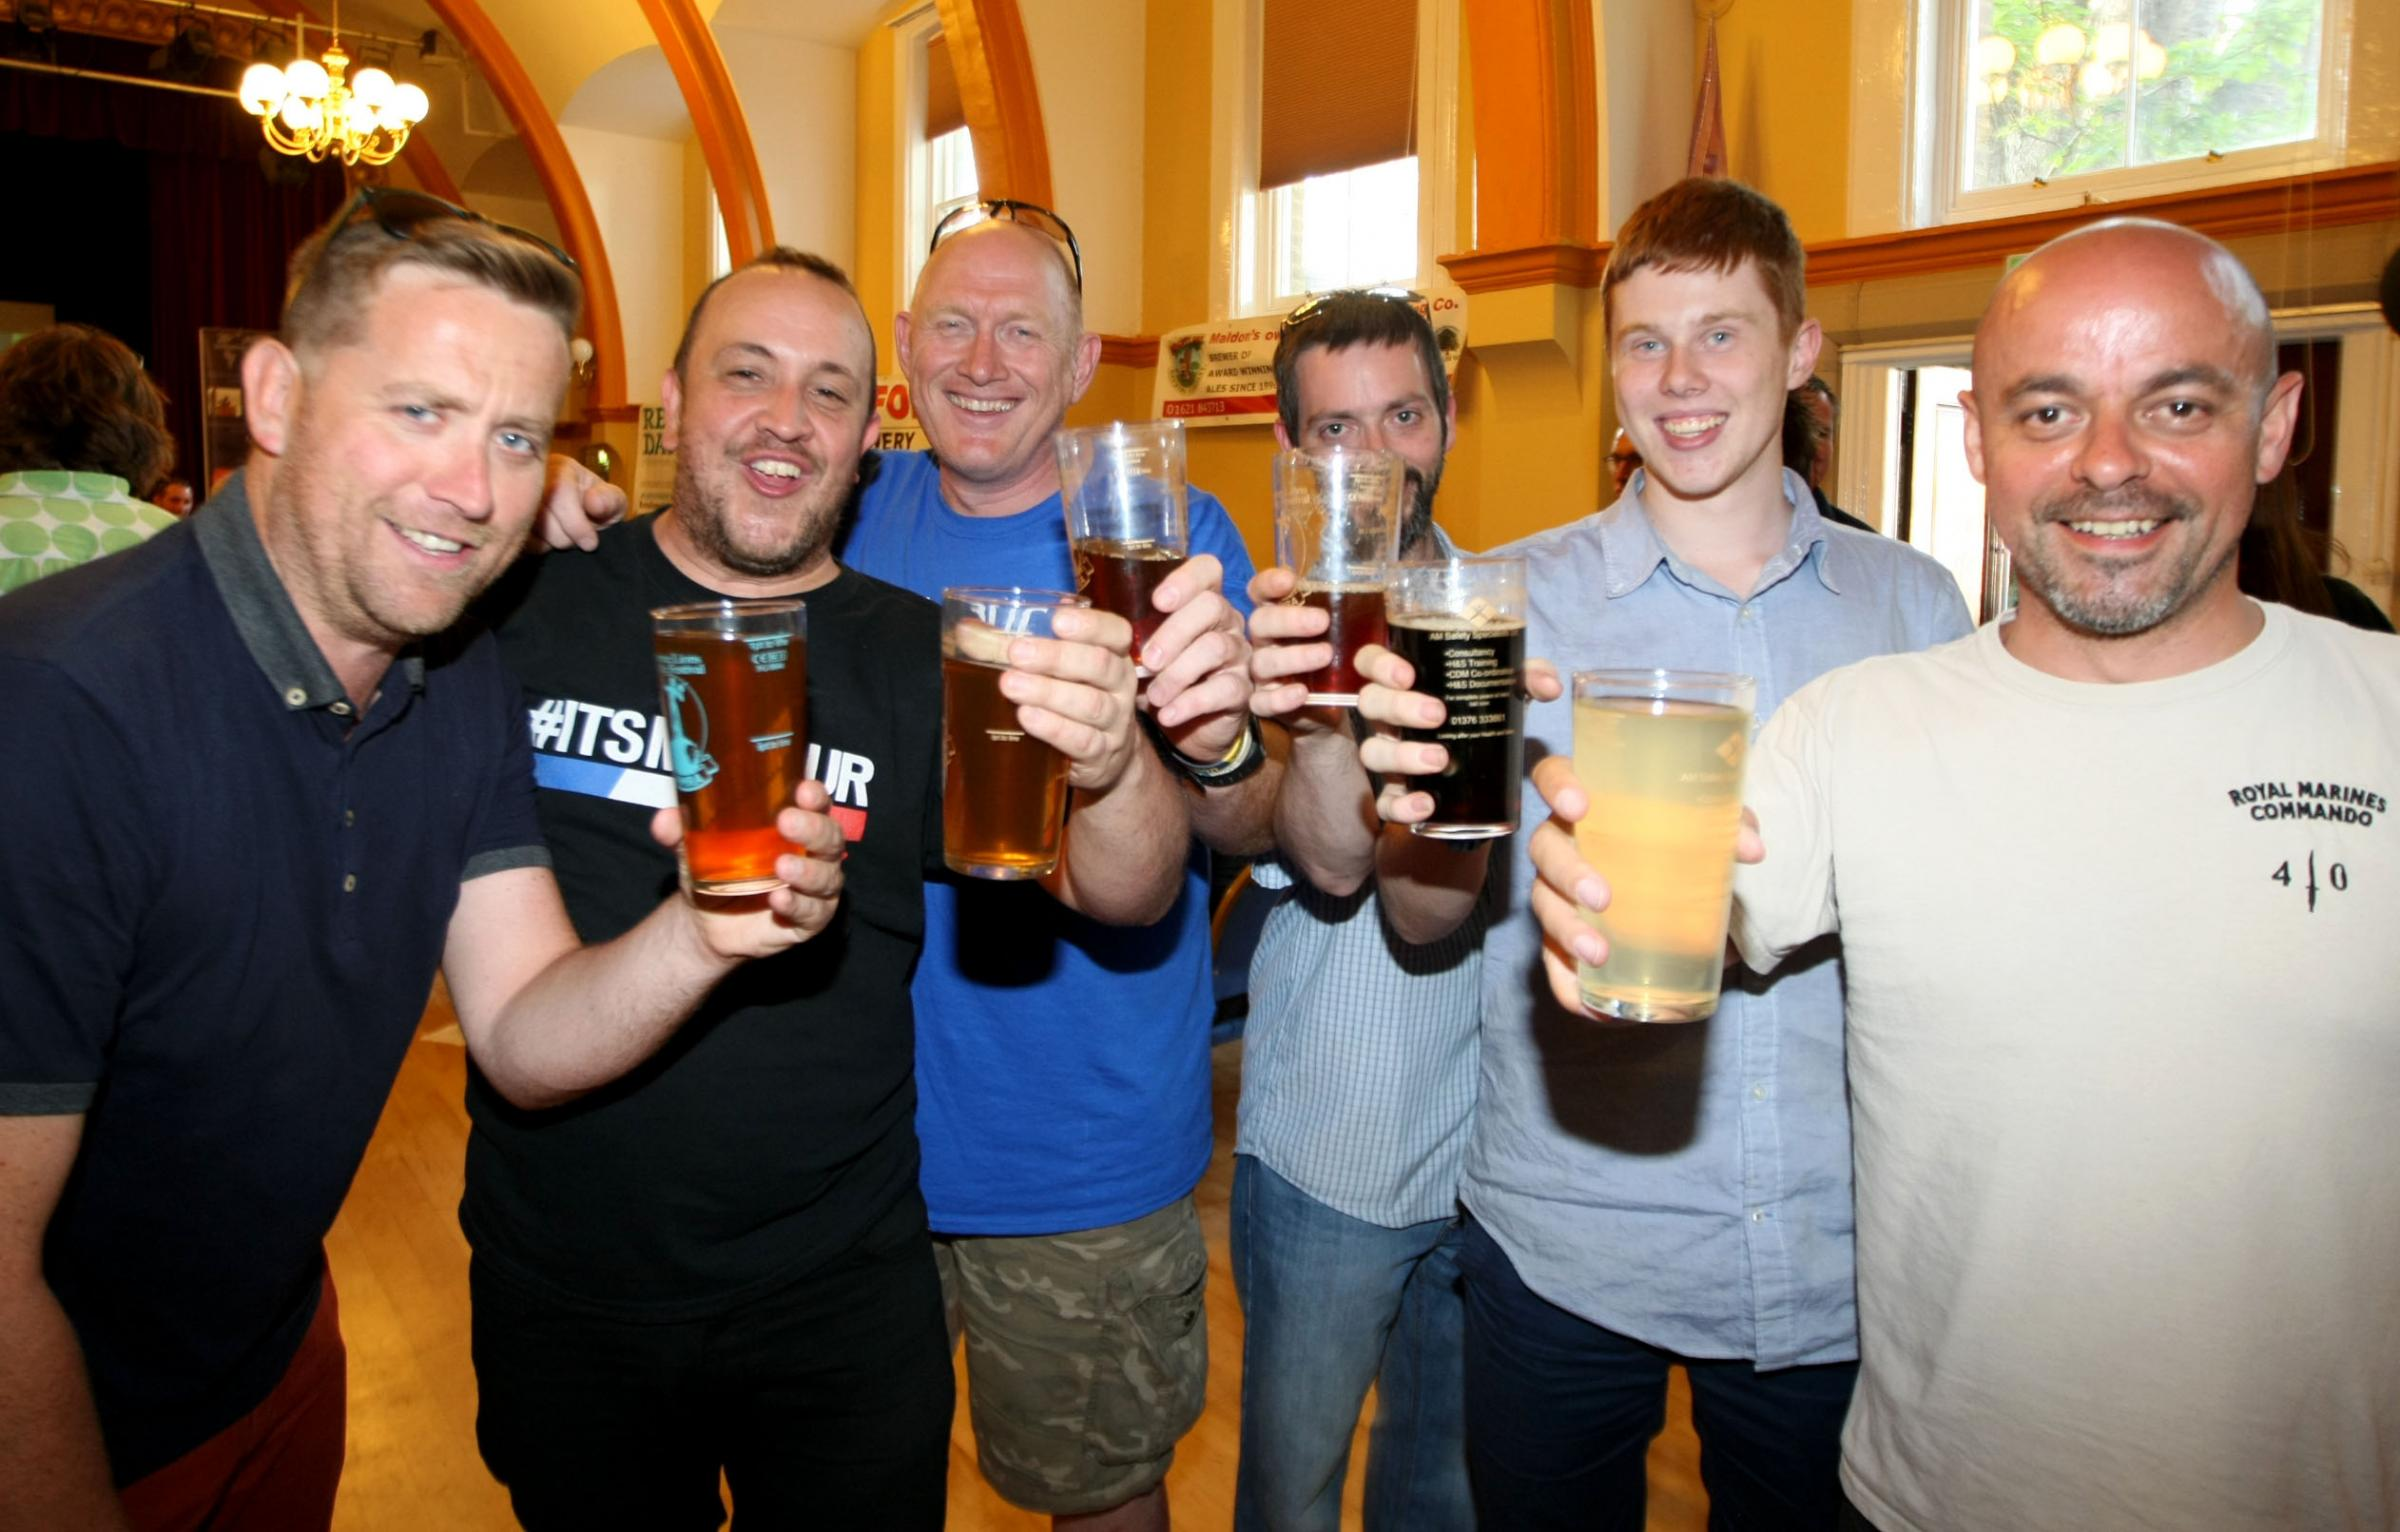 Ale festival is hailed a roaring success